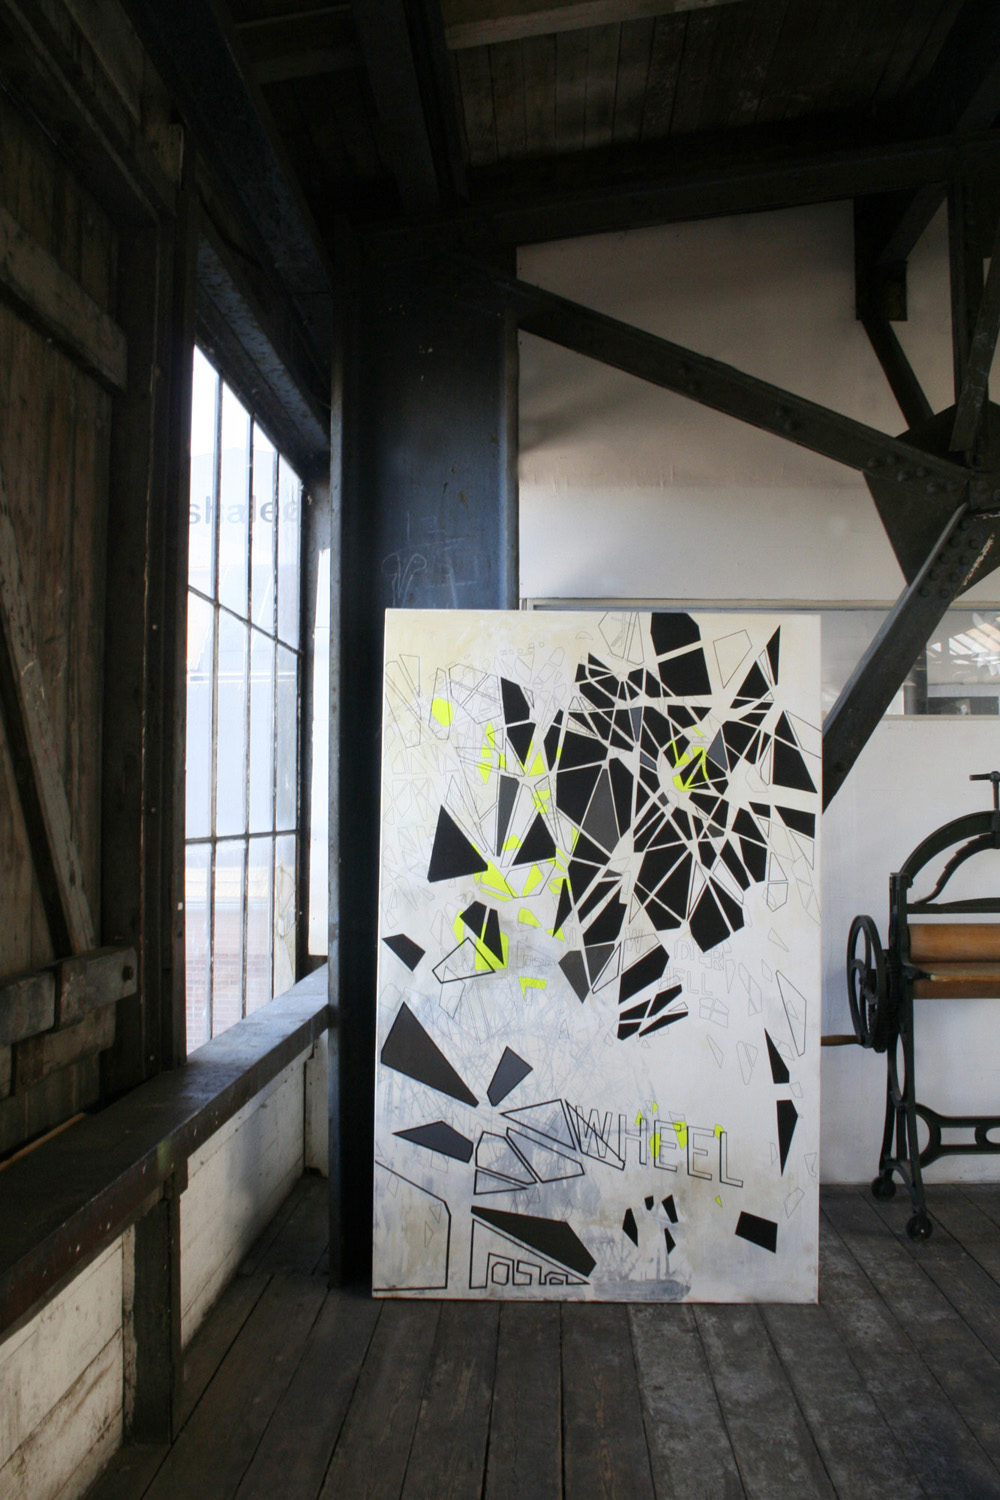 Painting in a loft Digital Collage, Photography, digital collage on the wall, digital printing, Framed digital collage Home Nursing photography, art photography, art photography, fragmentation, dynamics, structures and history. facebook, google,